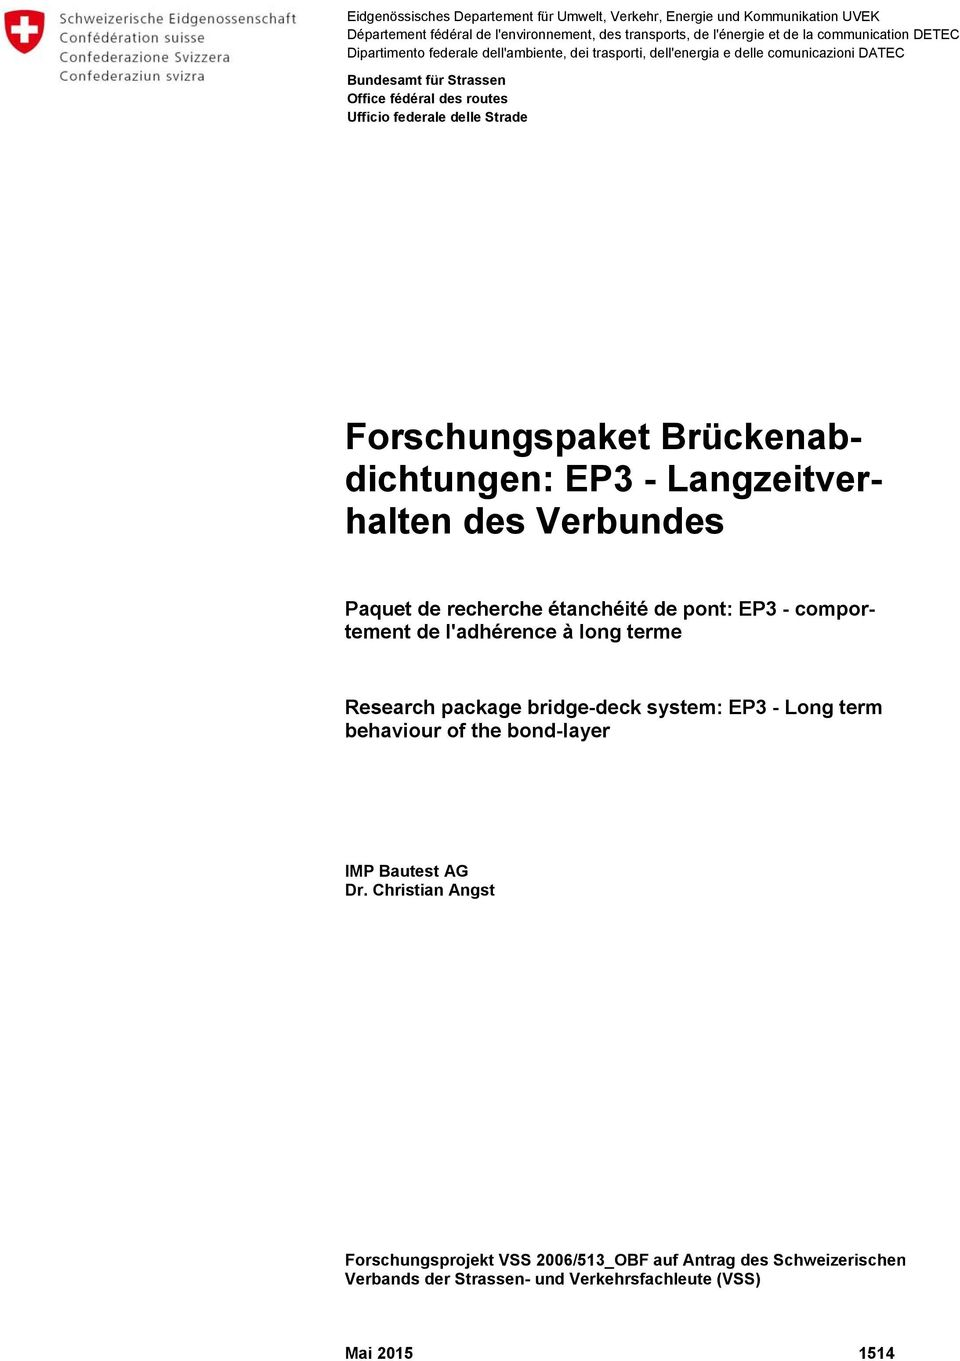 Brückenabdichtungen: EP3 - Langzeitverhalten des Verbundes Paquet de recherche étanchéité de pont: EP3 - comportement de l'adhérence à long terme Research package bridge-deck system: EP3 -